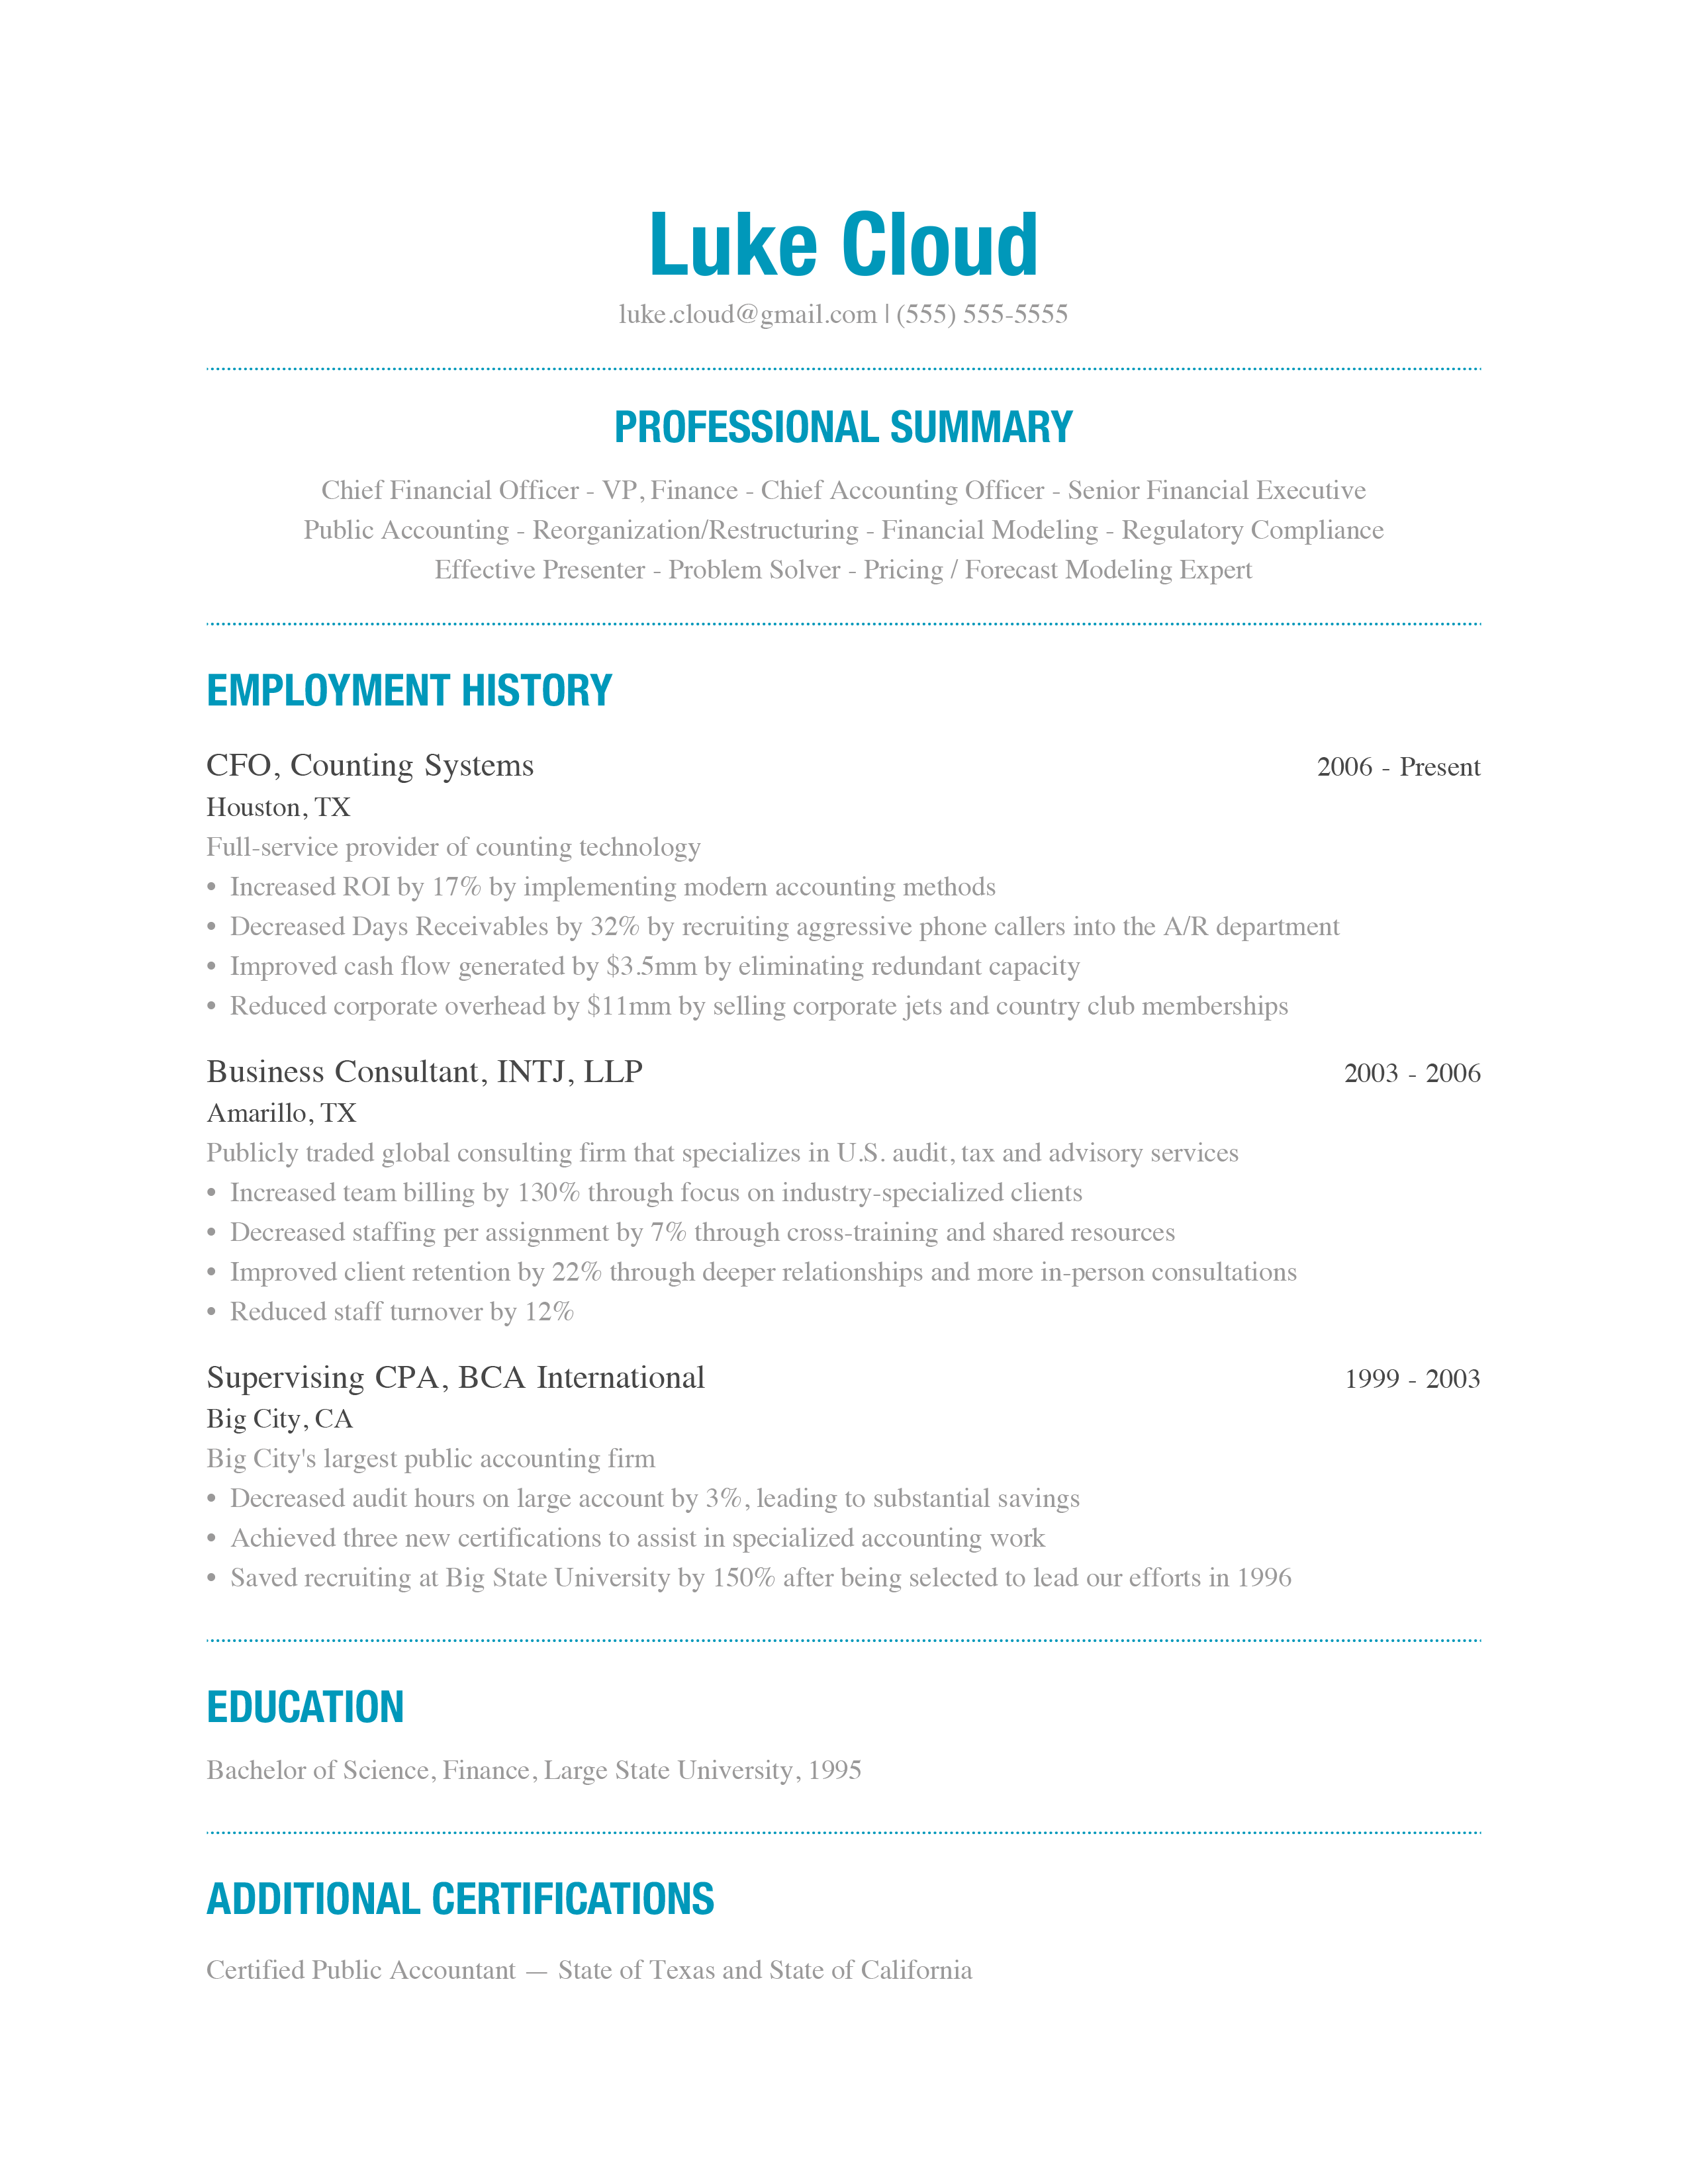 A Free, Modern, Beautiful Way to Write Your Resume Well | Ladders ...